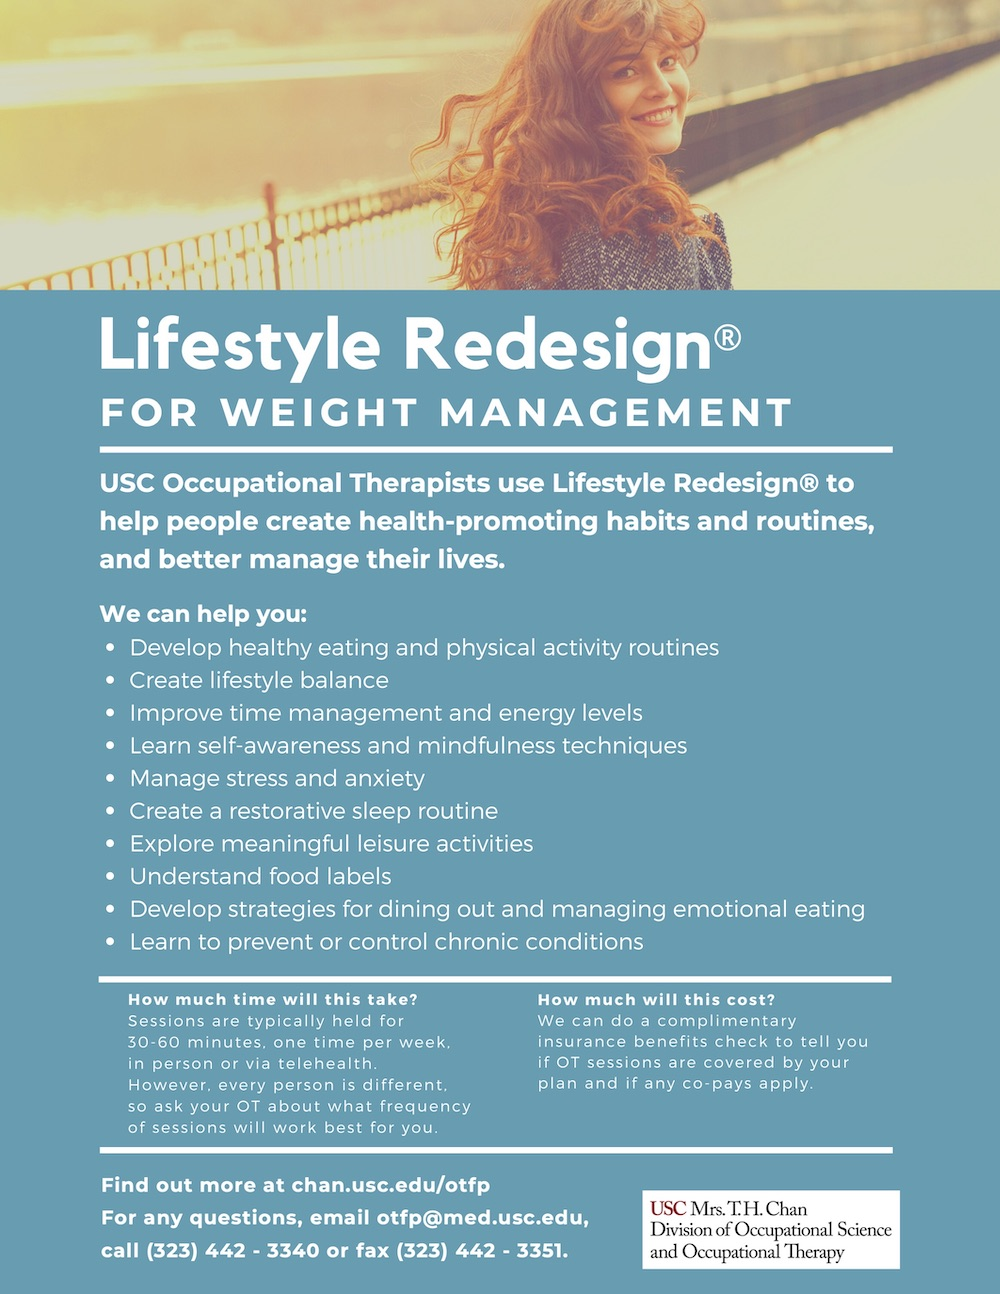 Lifestyle Redesign for Weight Management